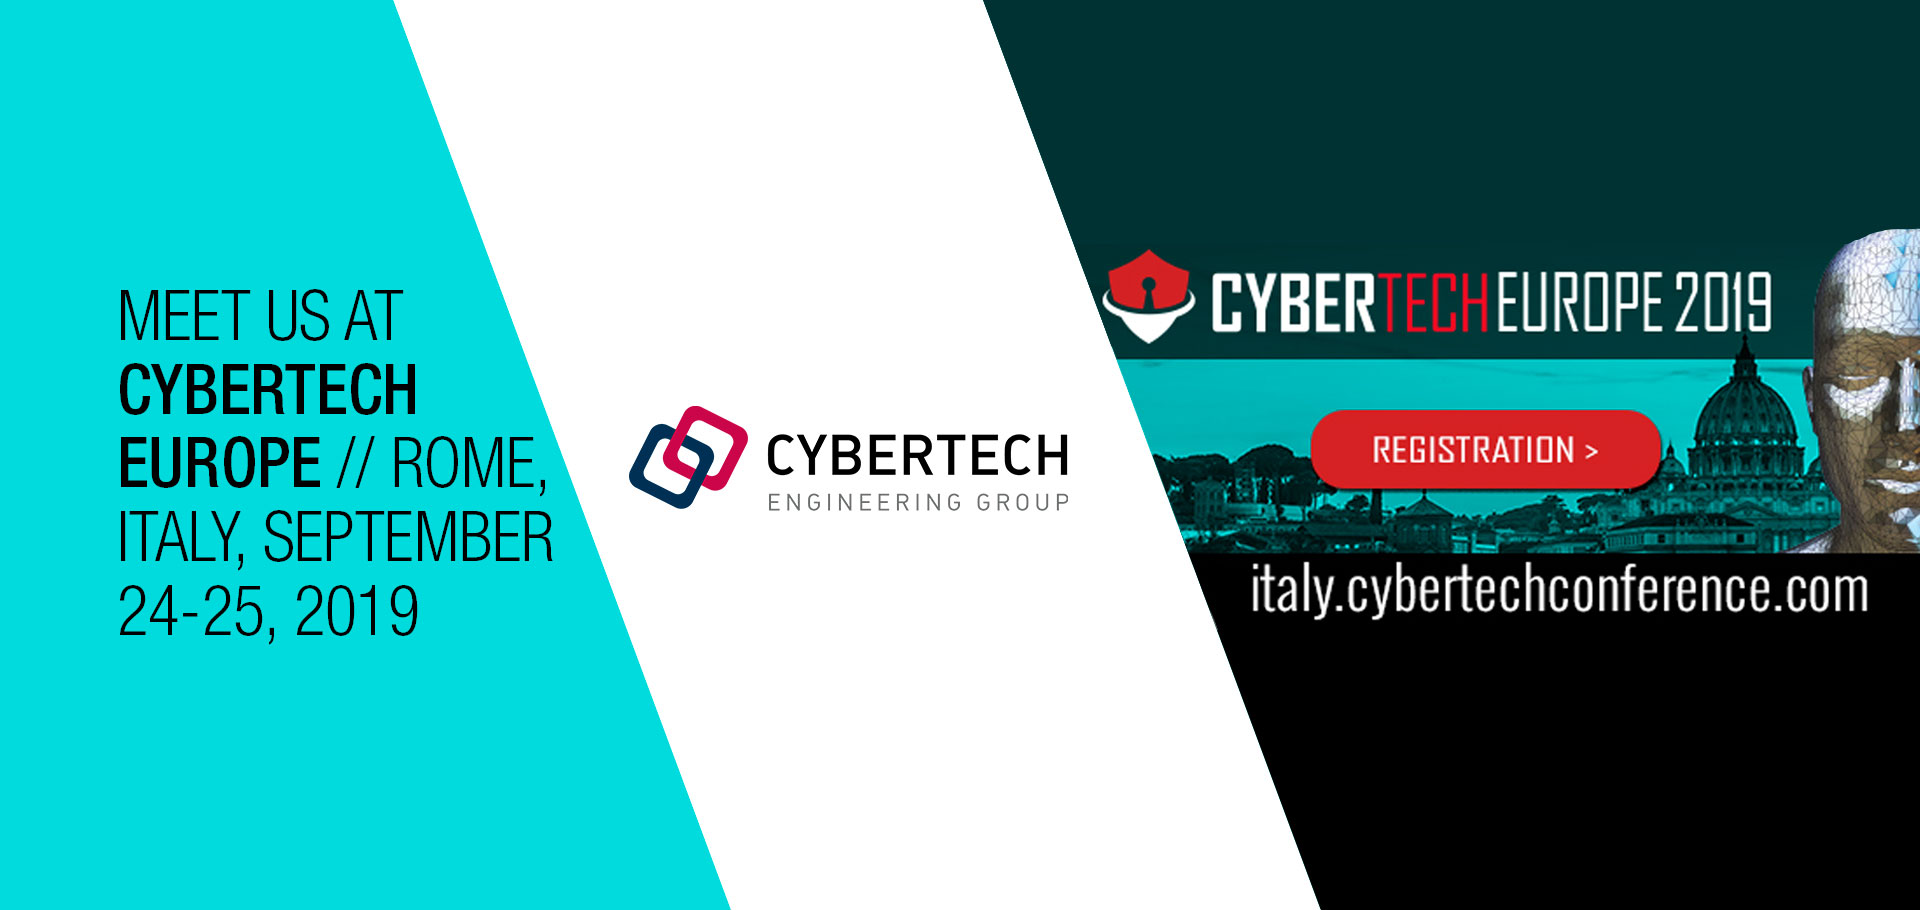 Cybertech Europe – world's biggest cyber event